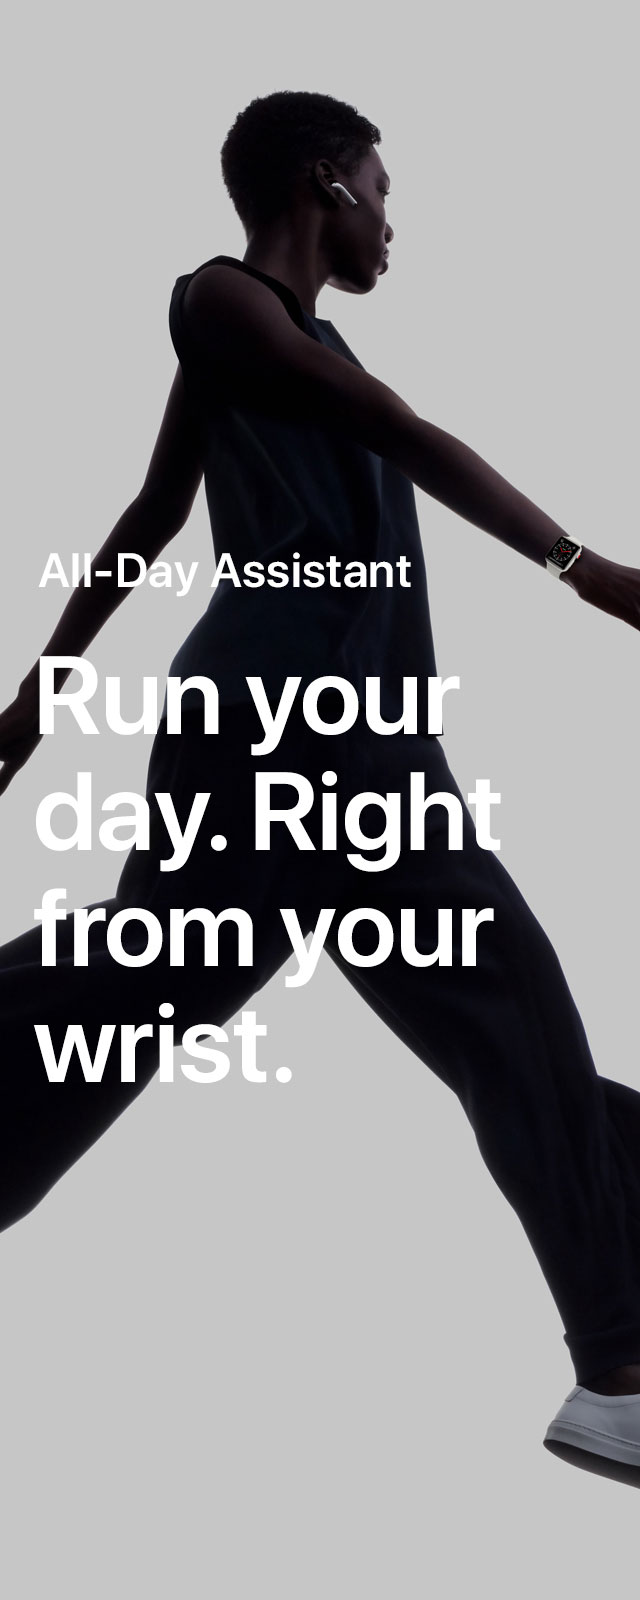 All day assistant. Run your day. Right from your wrist.